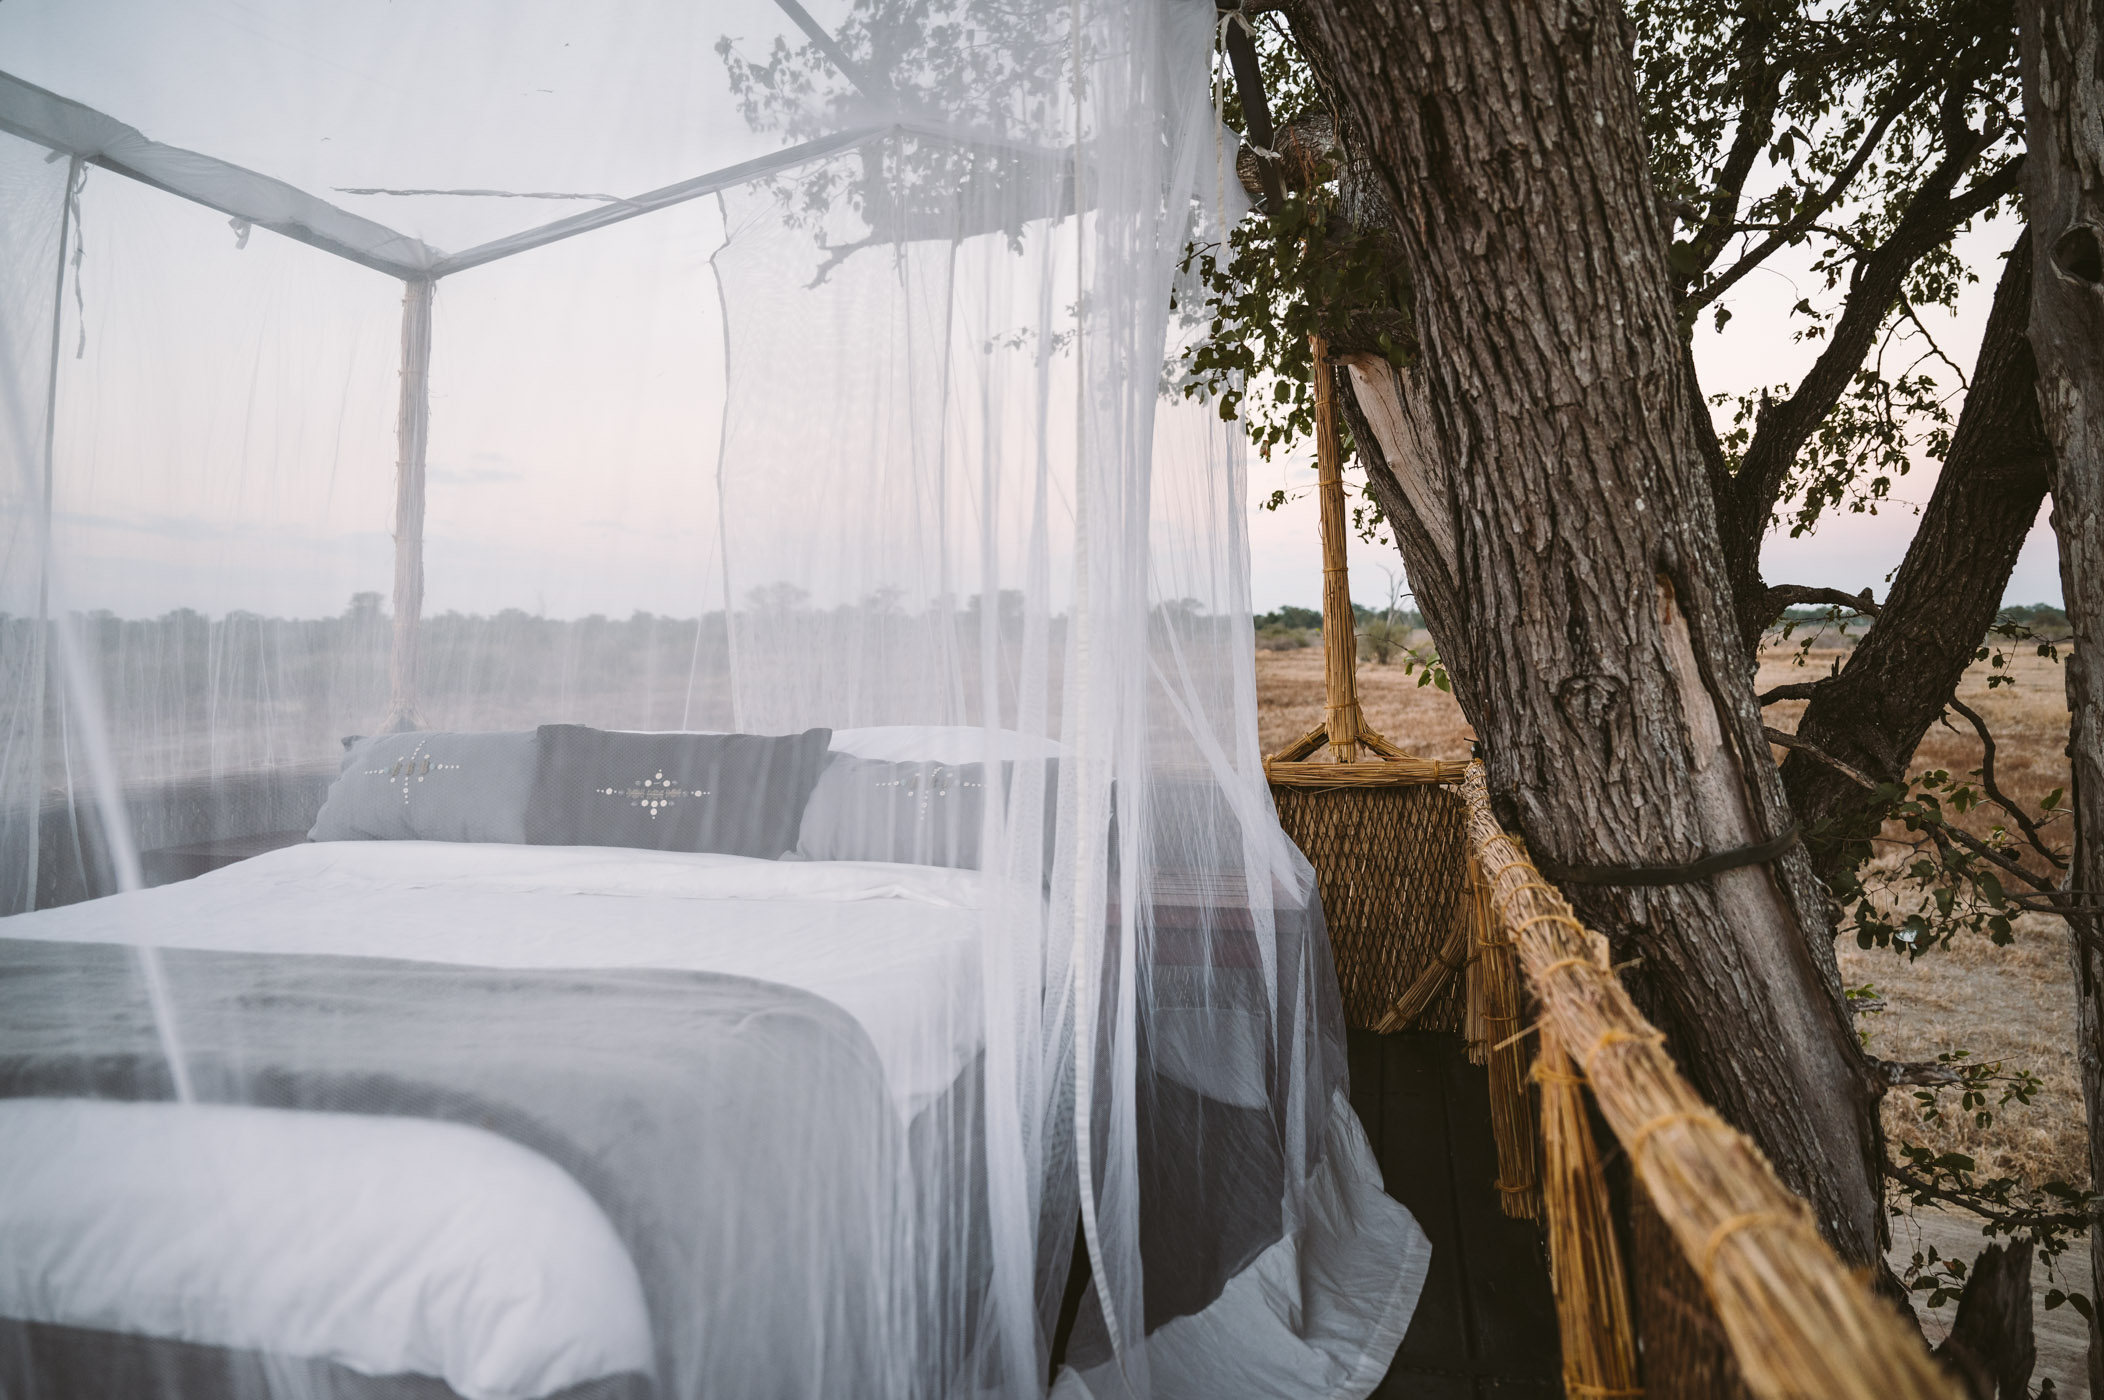 Numbu star bed by Shenton Safaris in South Luangwa National Park Zambia